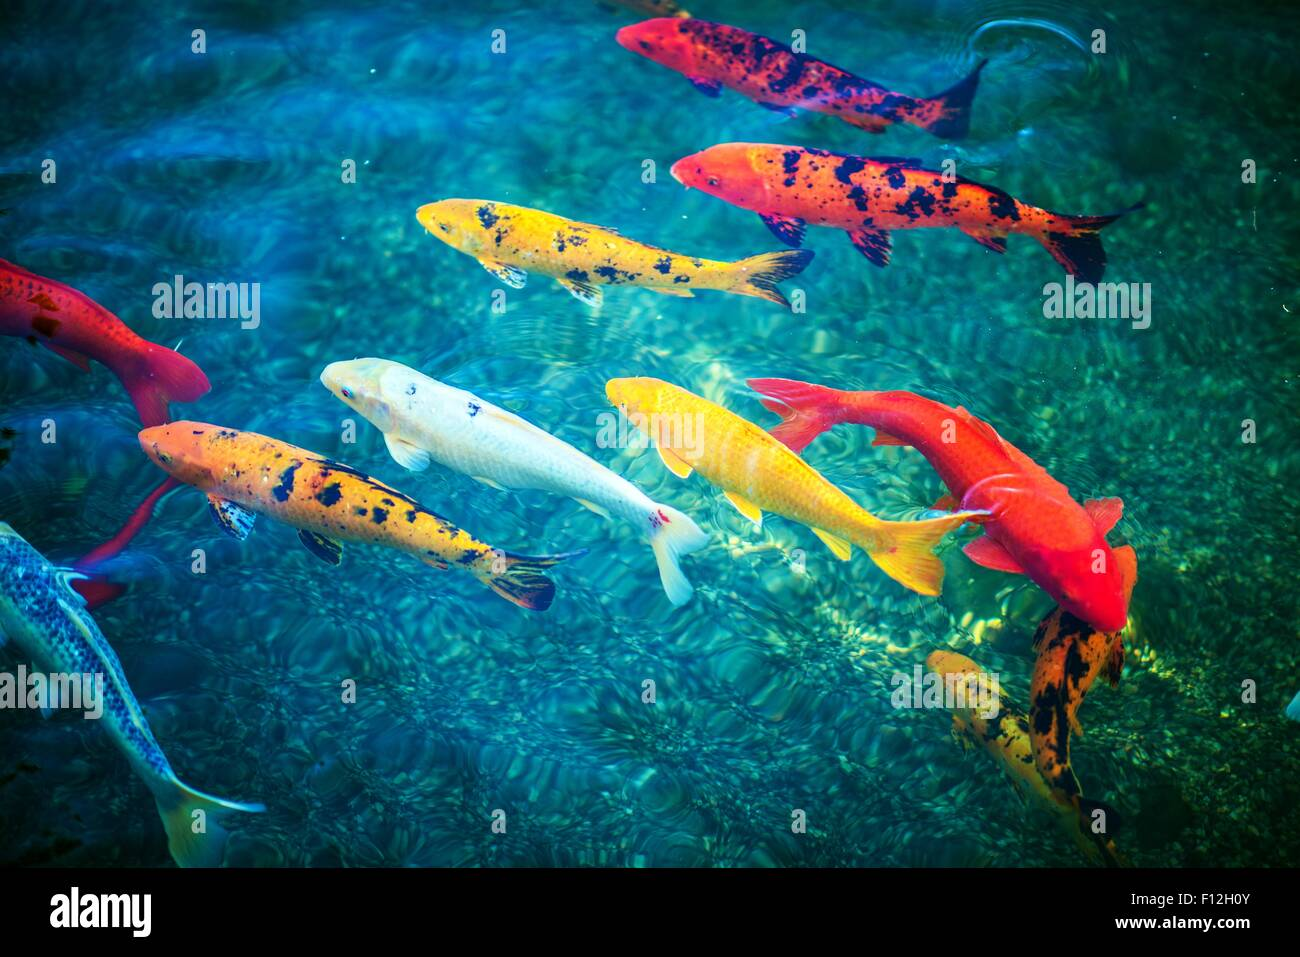 Colorful koi fishes in the pond closeup pond fishes stock for Colorful pond fish